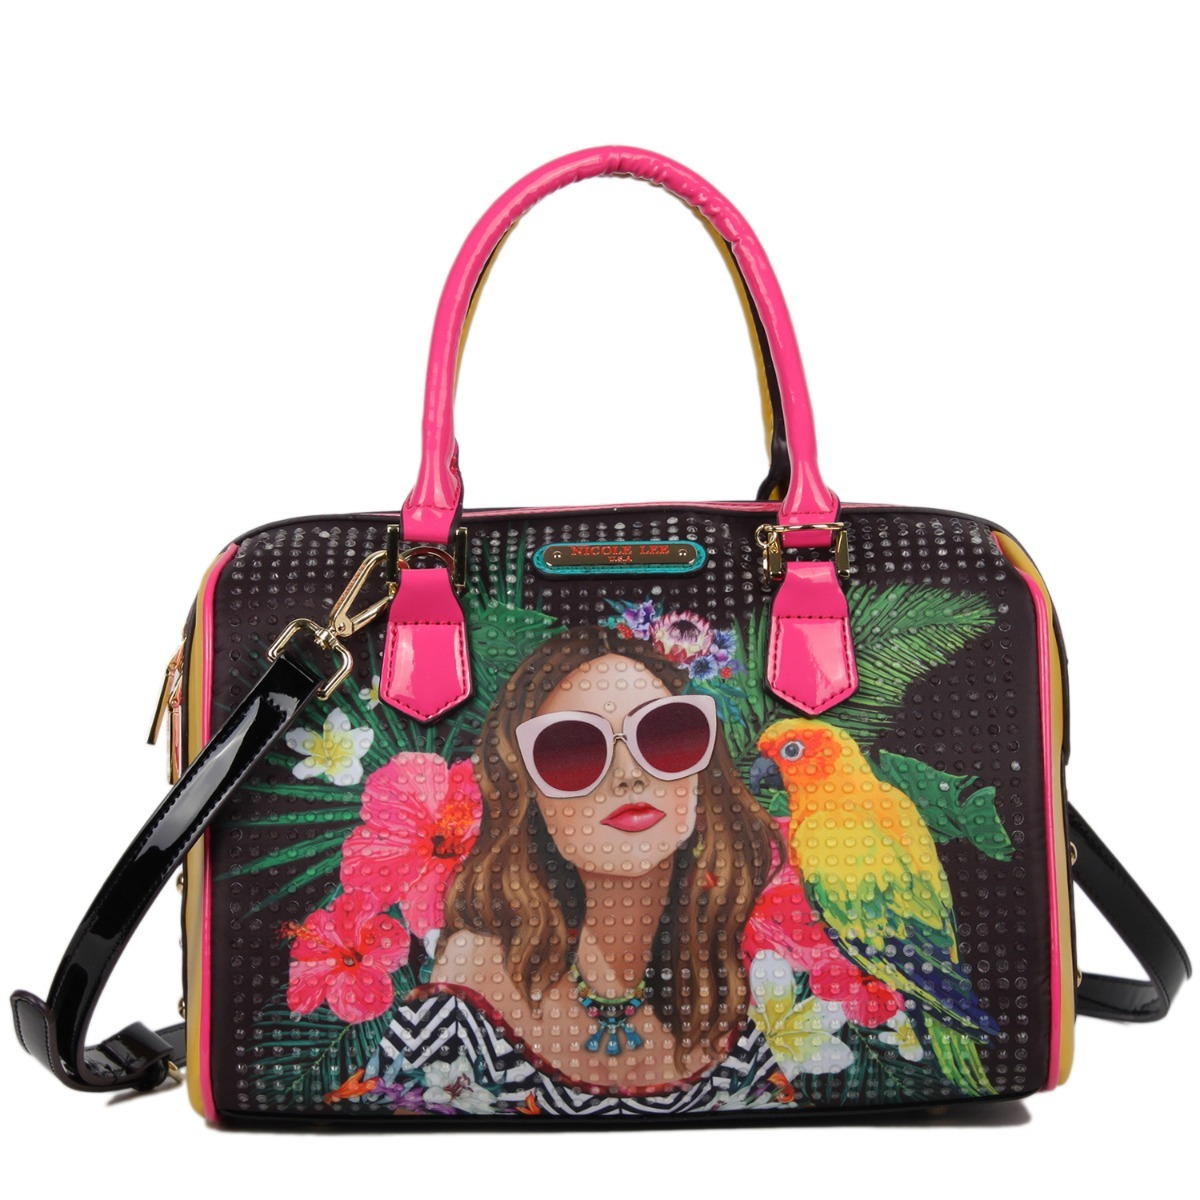 275404c49 Cartera Dama Nicole Lee Vacation Girl (vg12746) - $ 2.345,00 en ...